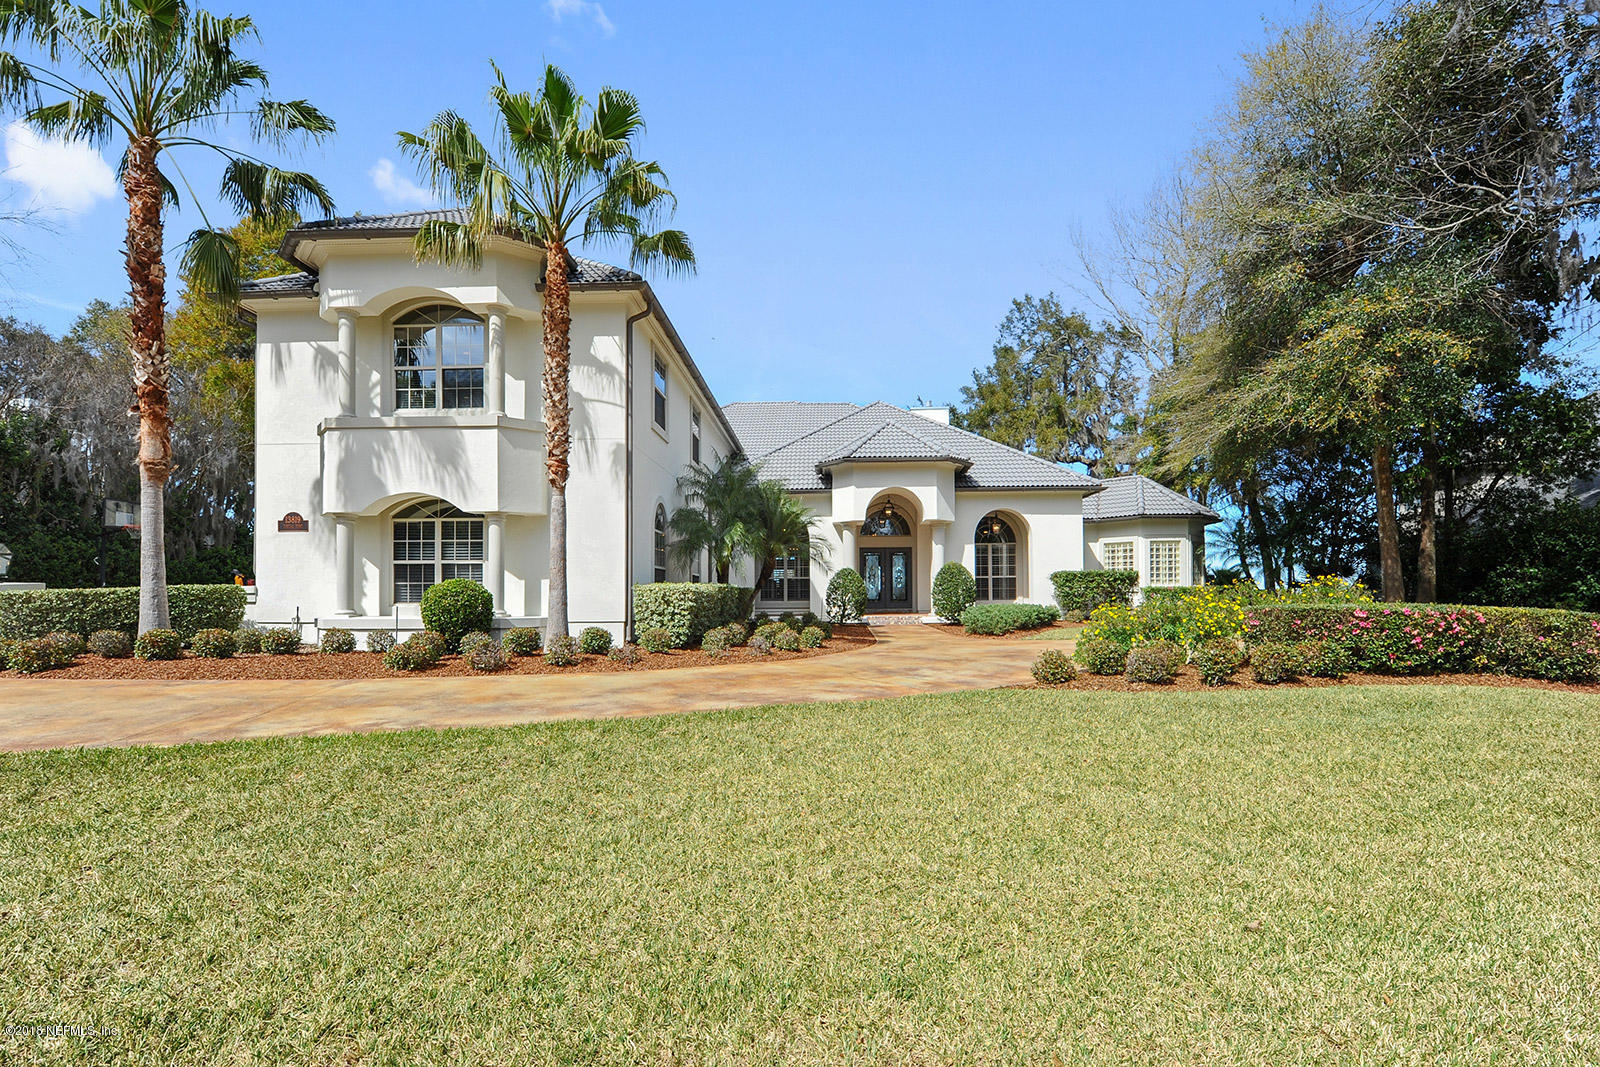 13819 TORTUGA POINT, JACKSONVILLE, FLORIDA 32225, 5 Bedrooms Bedrooms, ,4 BathroomsBathrooms,Residential - single family,For sale,TORTUGA POINT,942752